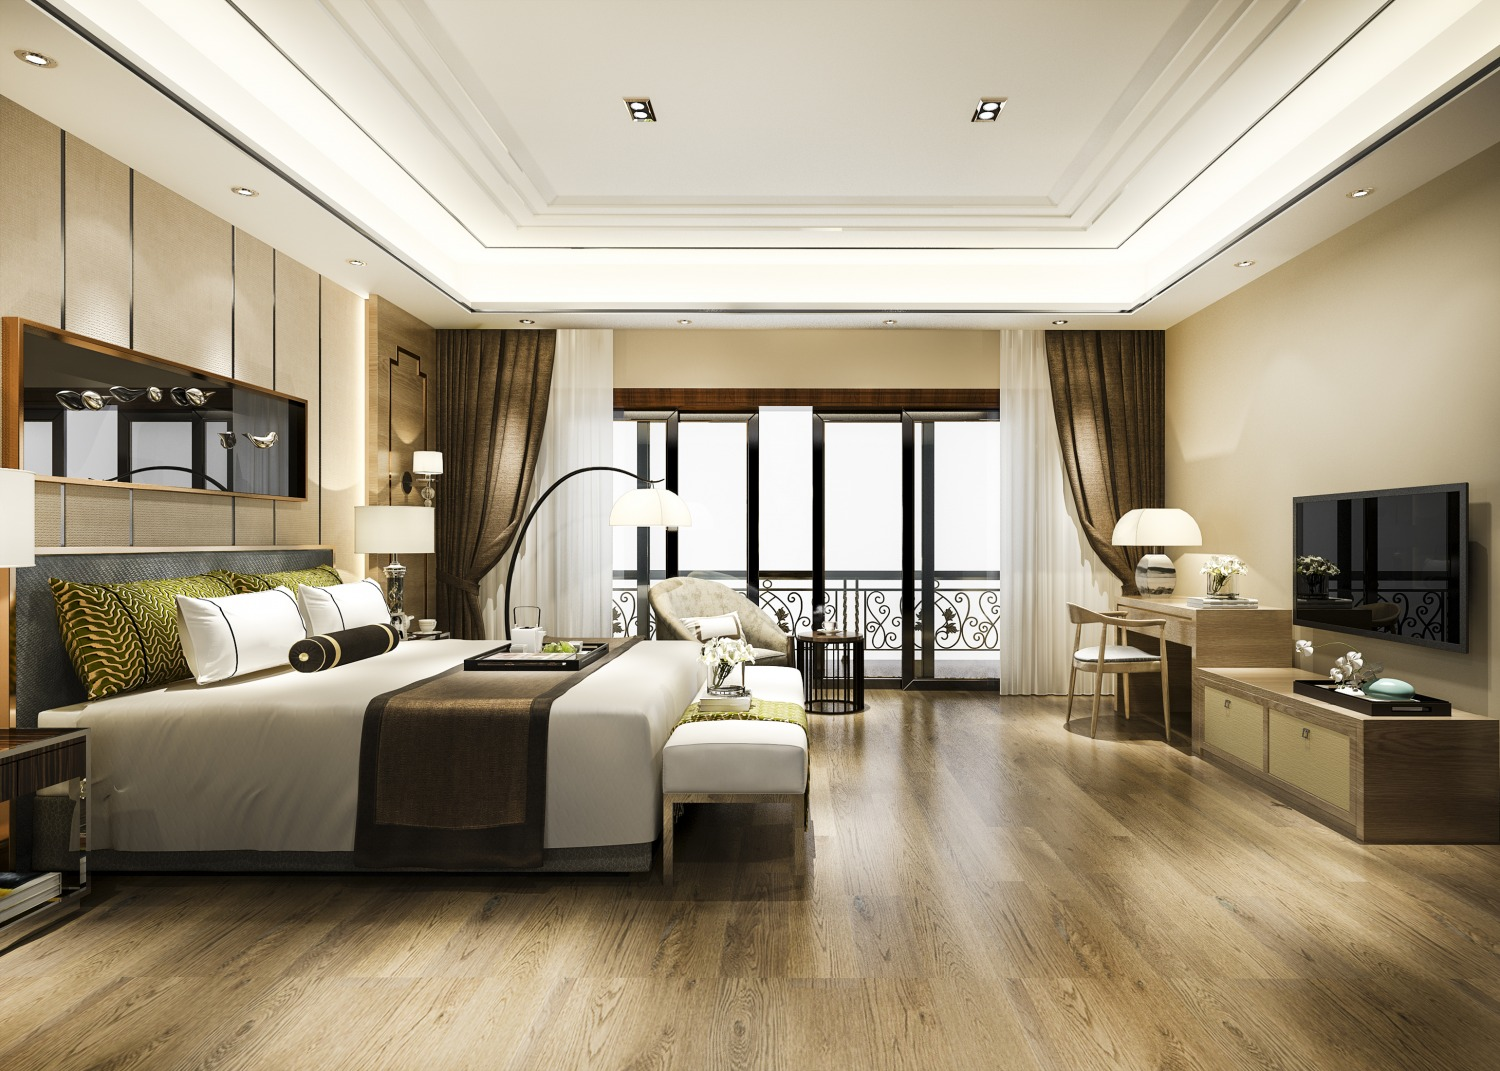 luxury bedroom suite resort high rise hotel with working table